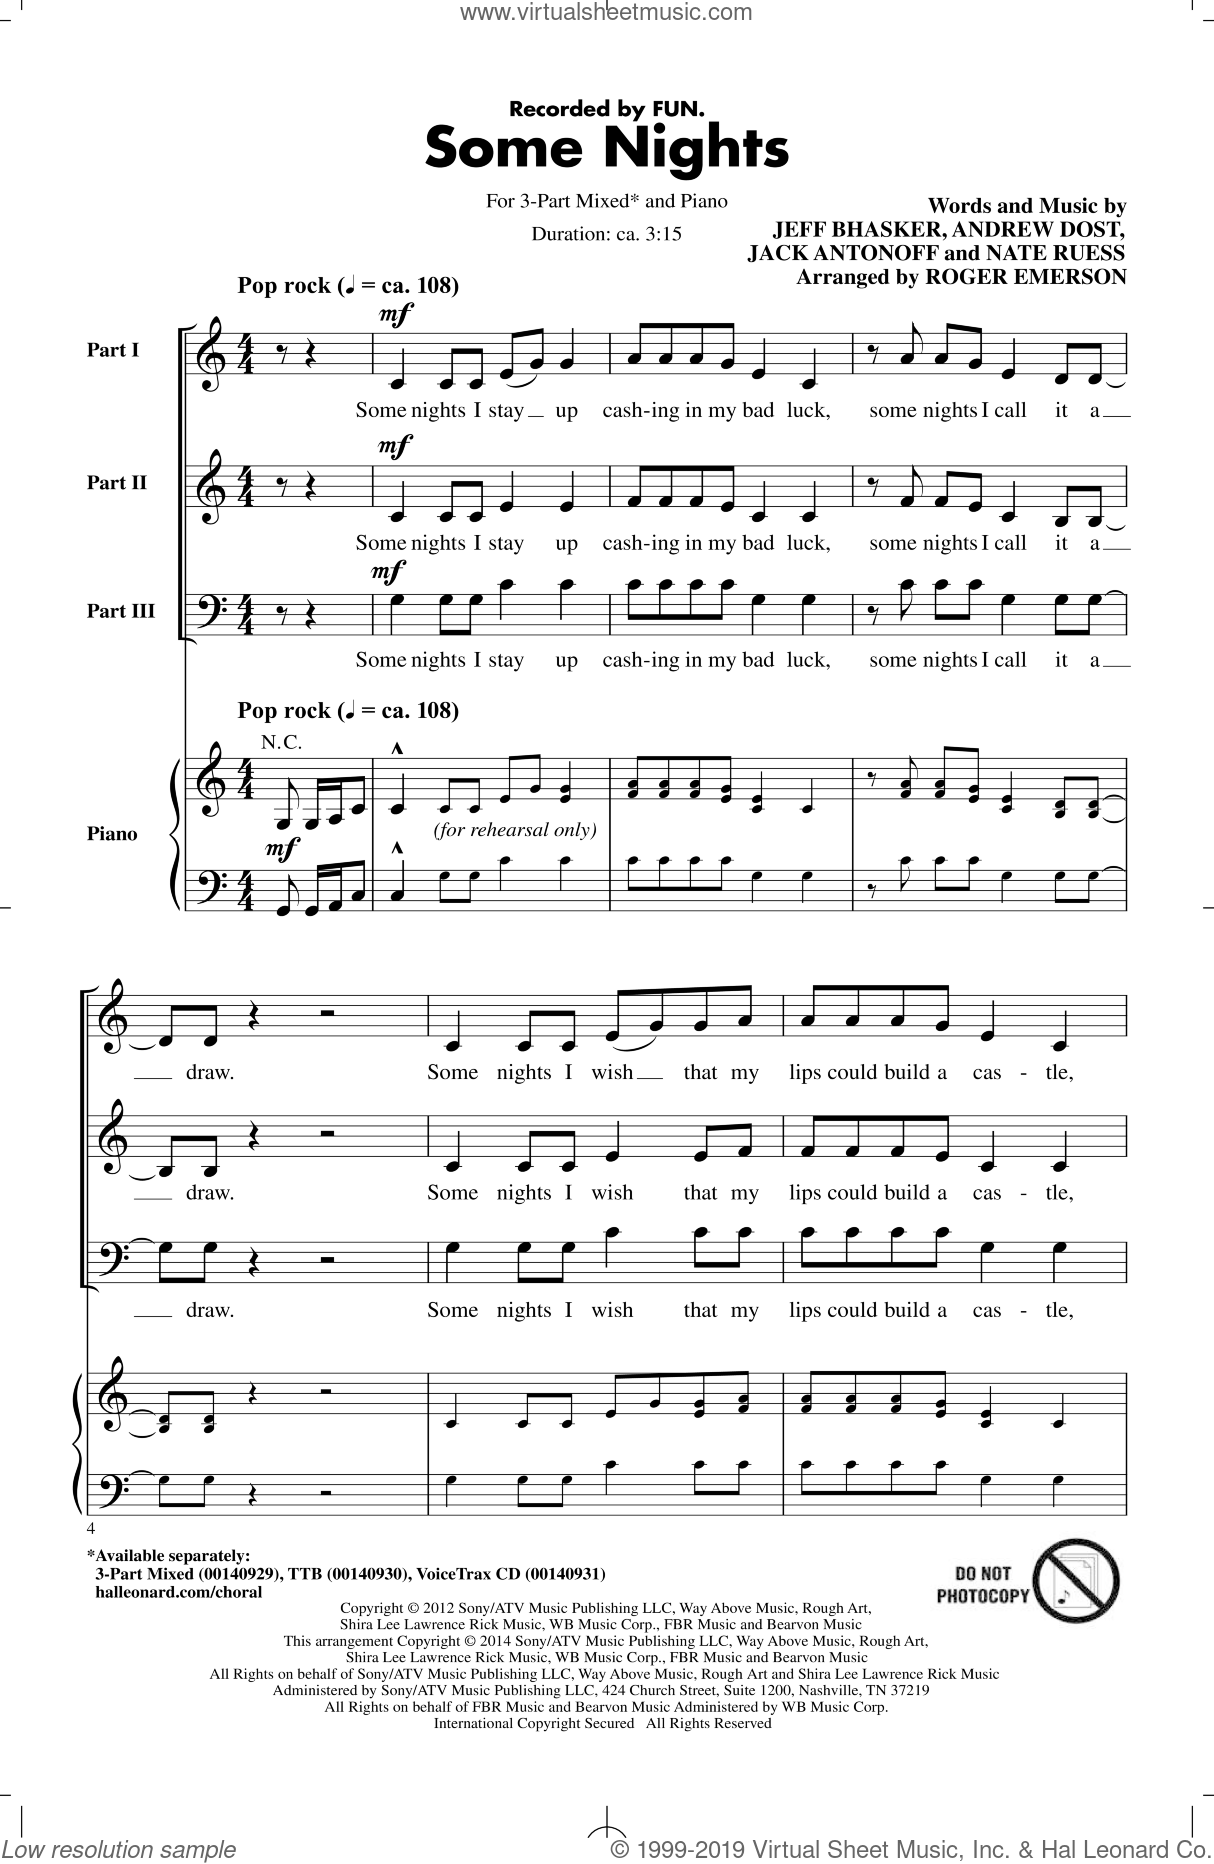 Some Nights sheet music for choir (3-Part Mixed) by Roger Emerson, Fun, Andrew Dost, Jack Antonoff, Jeff Bhasker and Nate Ruess, intermediate skill level